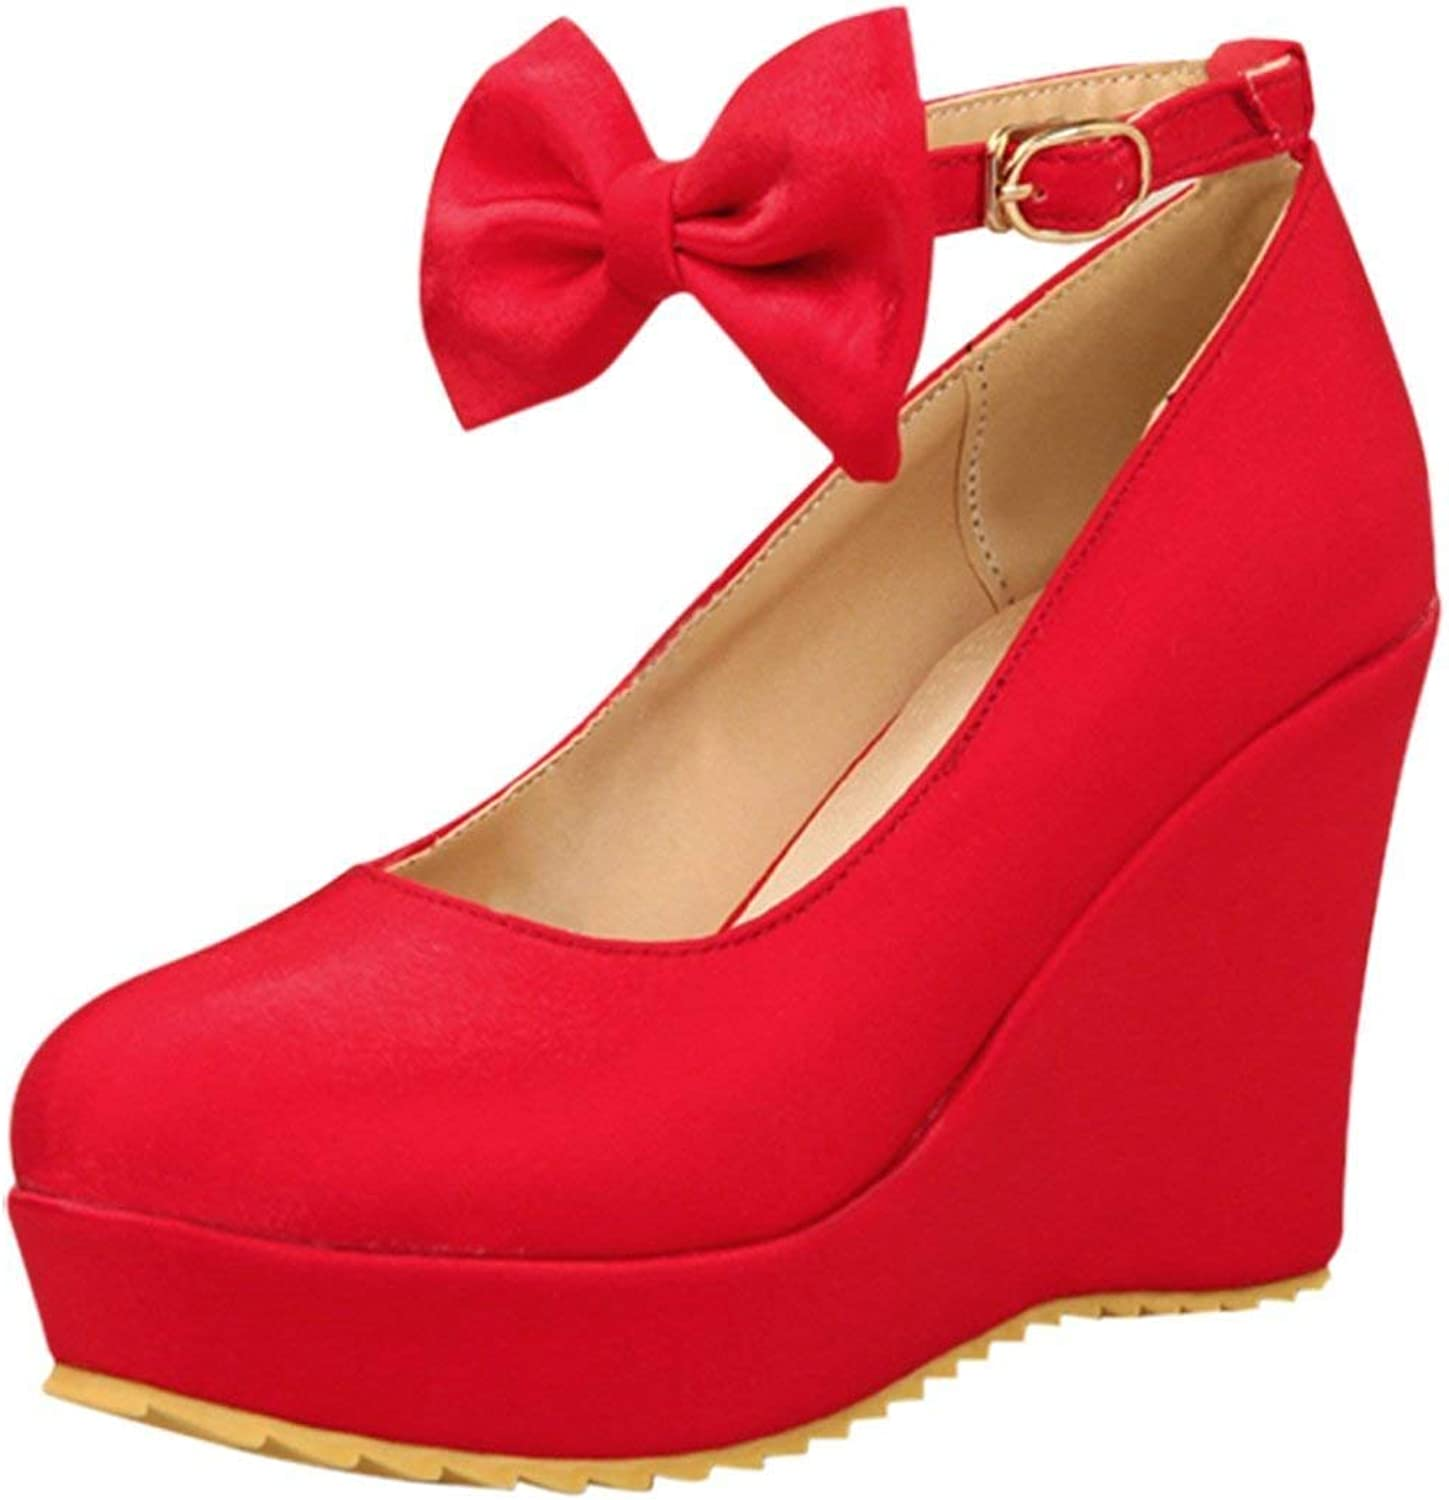 ZX Boots Women's High Heel Wedge Platform Pumps with Bows Ankle Strap Cute Court shoes